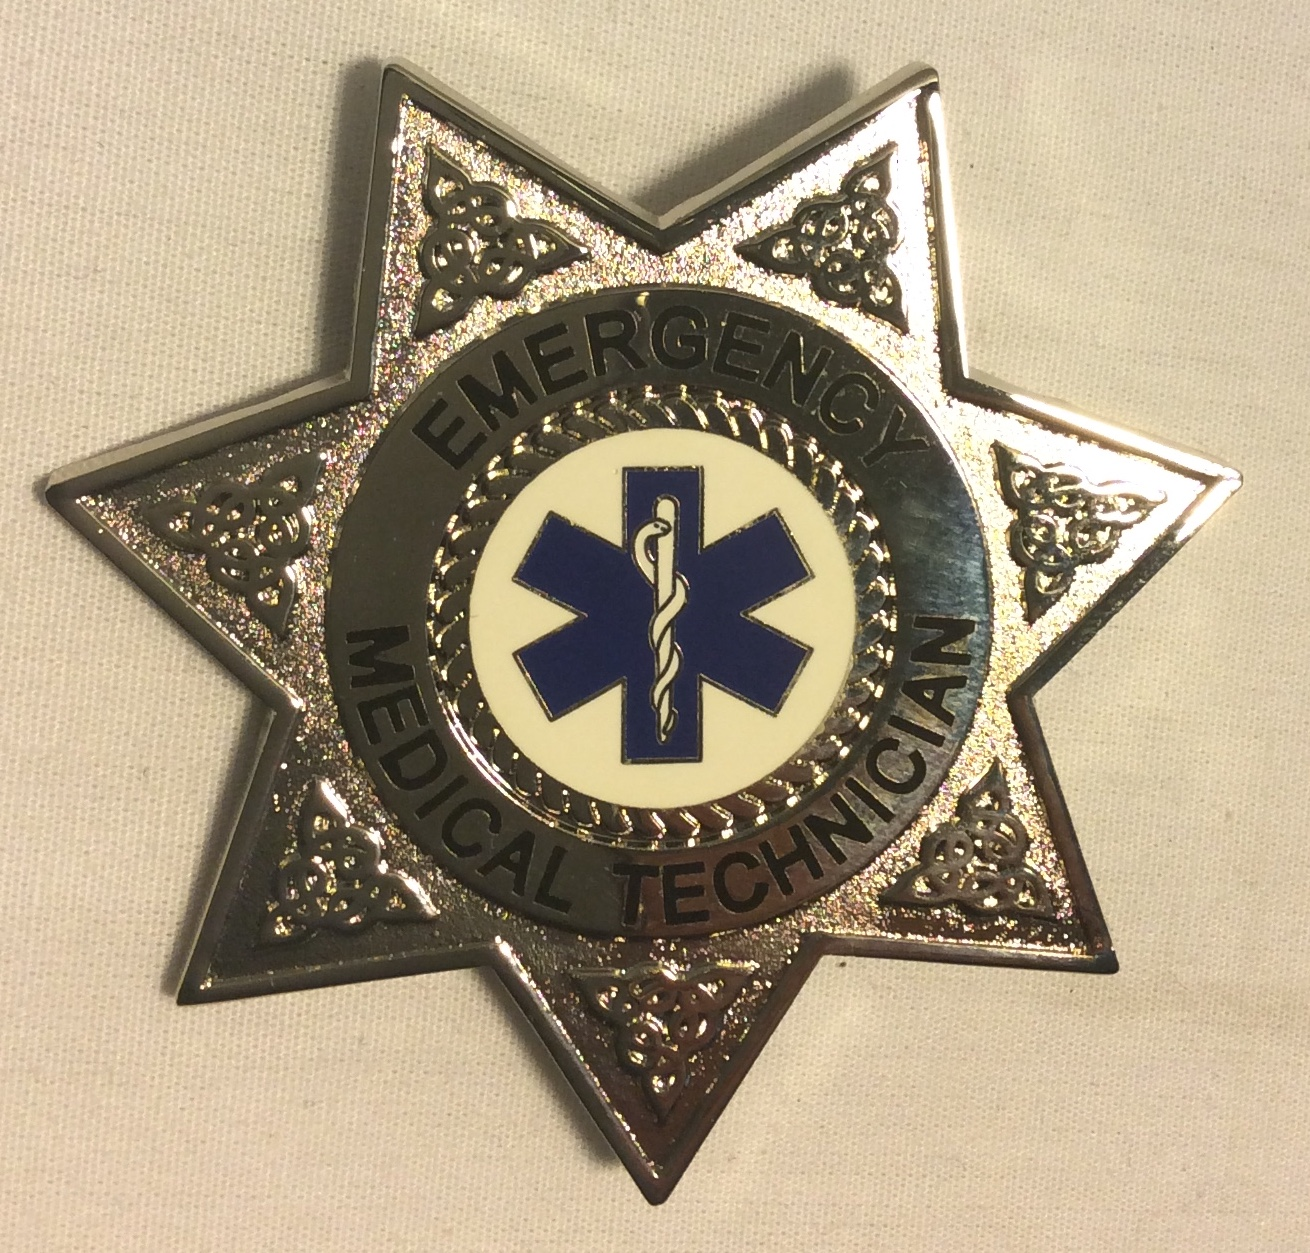 EMT Badge, silver 7 point star